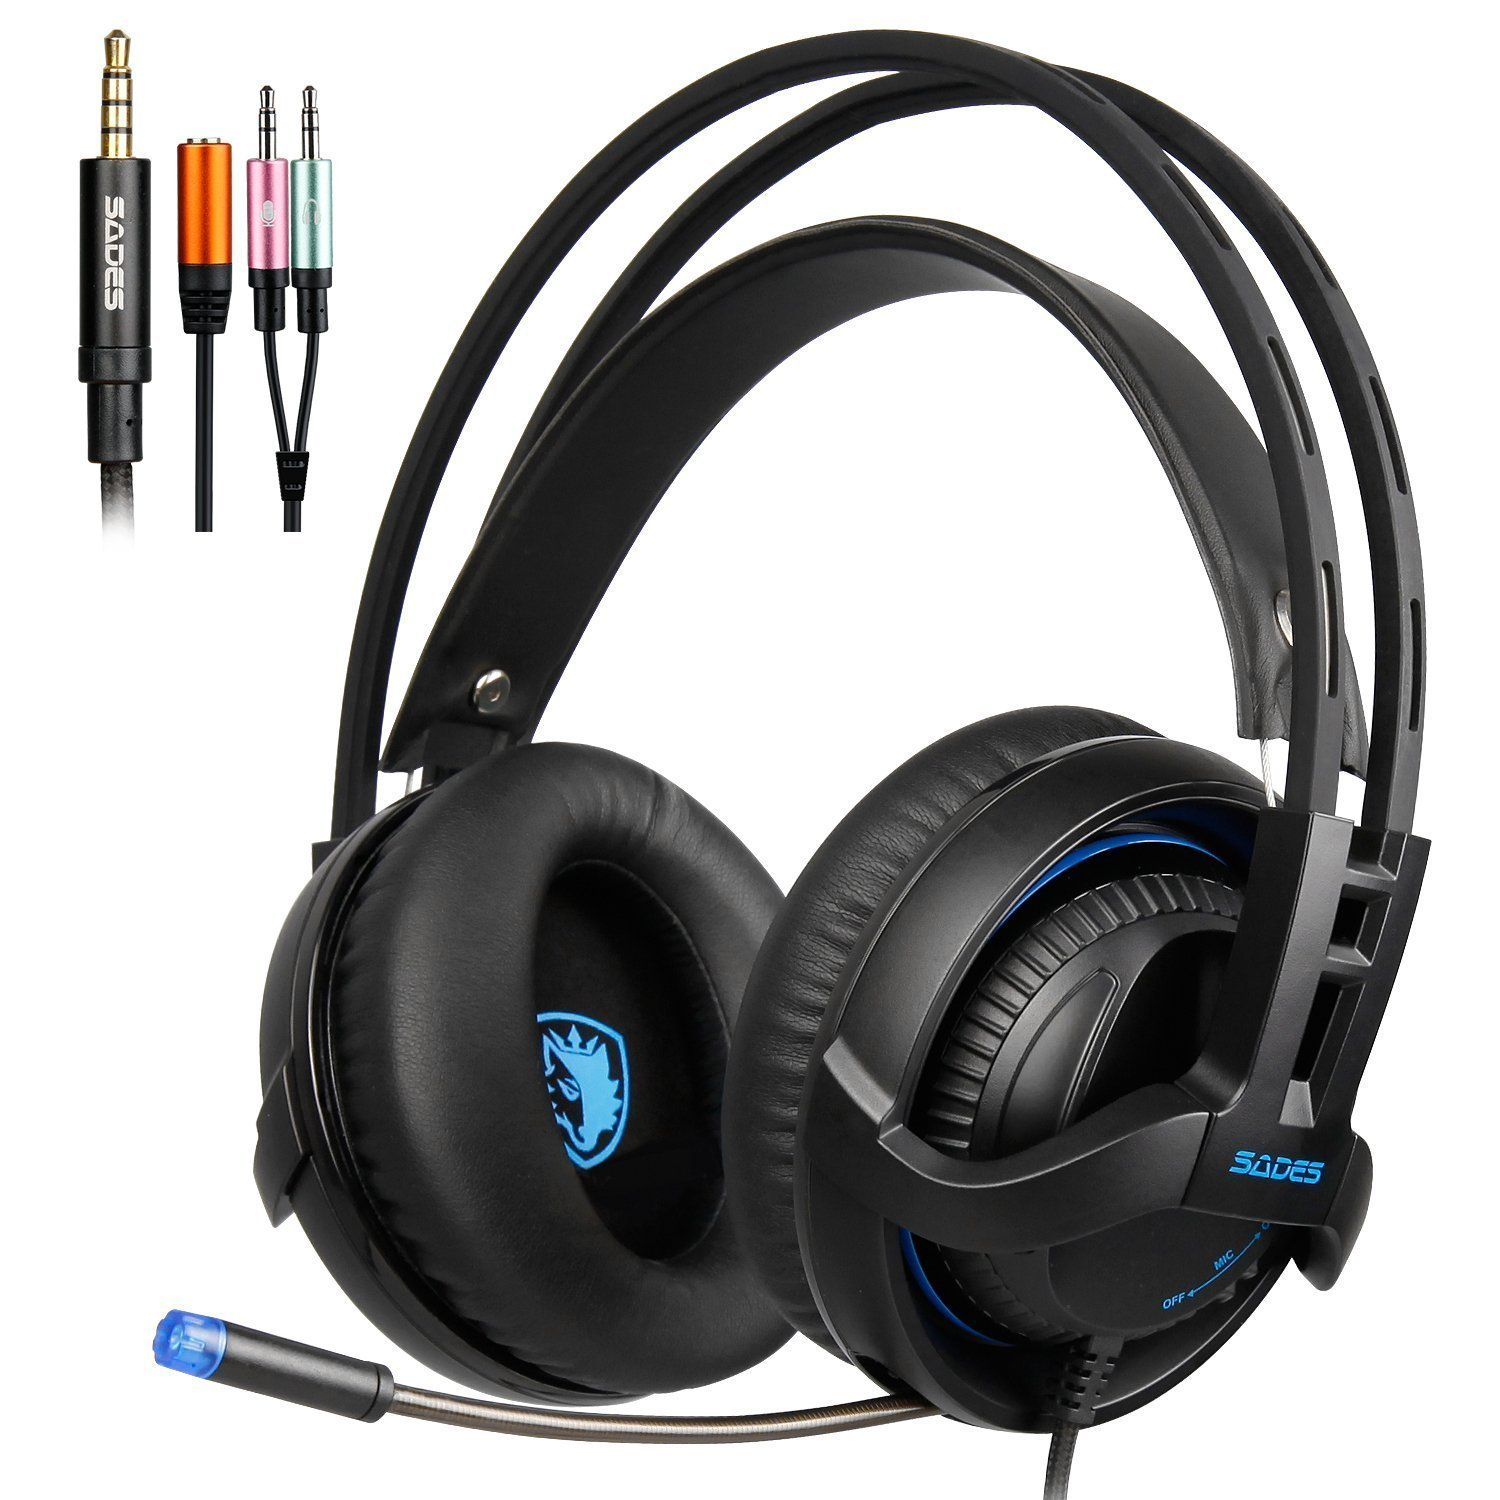 SADES SA935 New Deep Bass headphones with Mic 3.5MM Jack PC Gaming Headset Stereo Professional headsets Noise-Canceling Volume Control LED Light For New Xbox One/PC/PS4/Smartphones(Black)¡